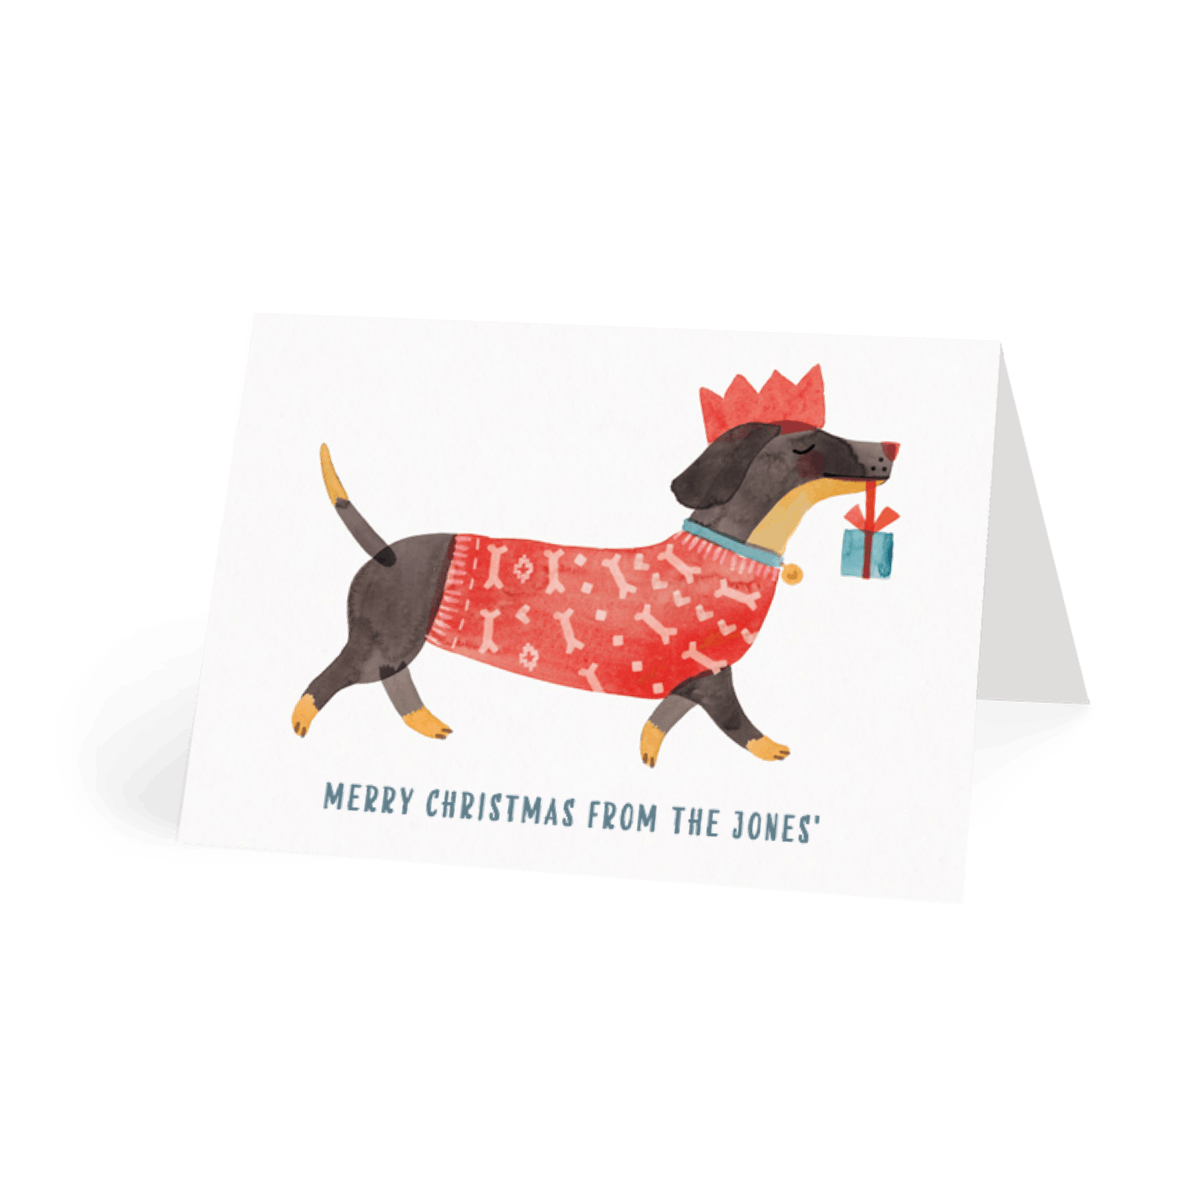 Https%3a%2f%2fwww.papier.com%2fproduct image%2f28907%2f14%2fchristmas dachshund 7261 front 1543404475.png?ixlib=rb 1.1